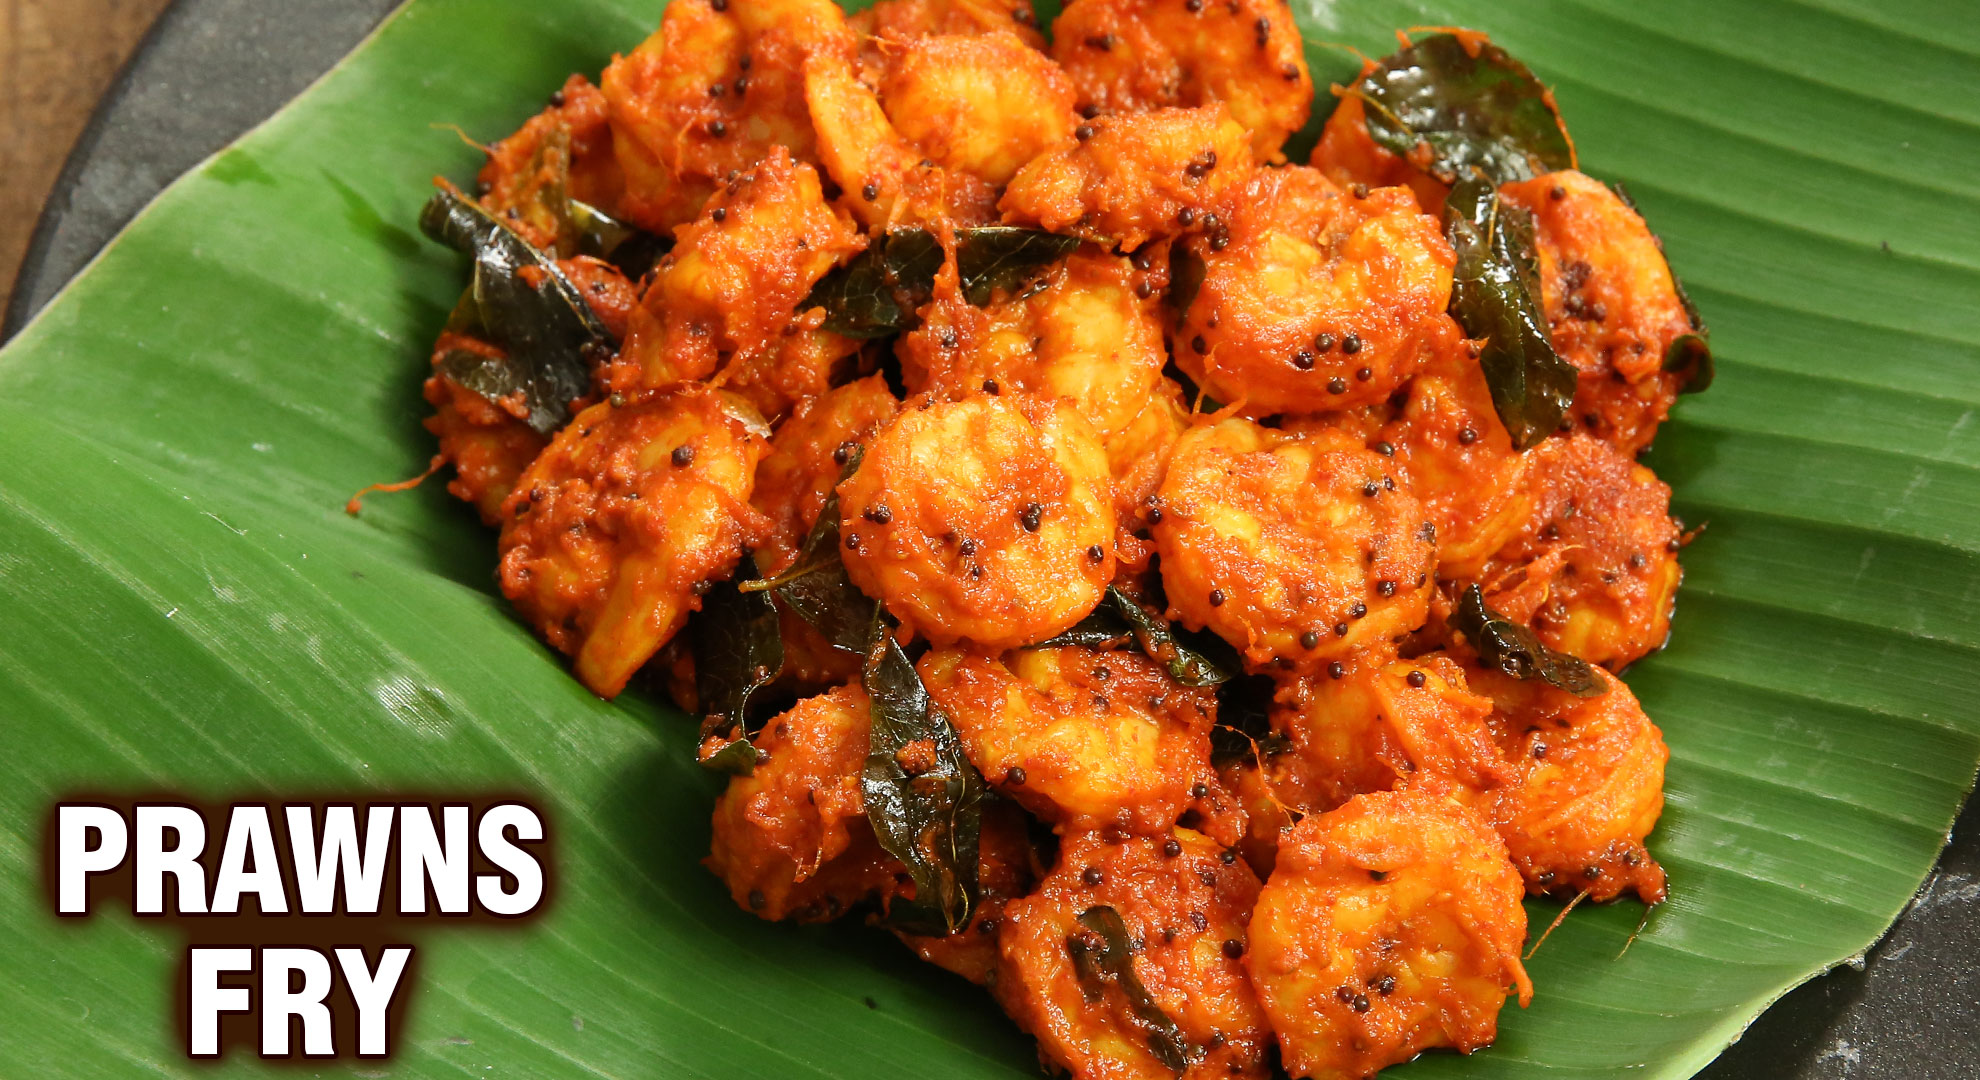 Prawns Fish Fry | Restaurant Style Shrimps Fry | How To Make Fried Prawns | Fish Fry Recipe | Tarika